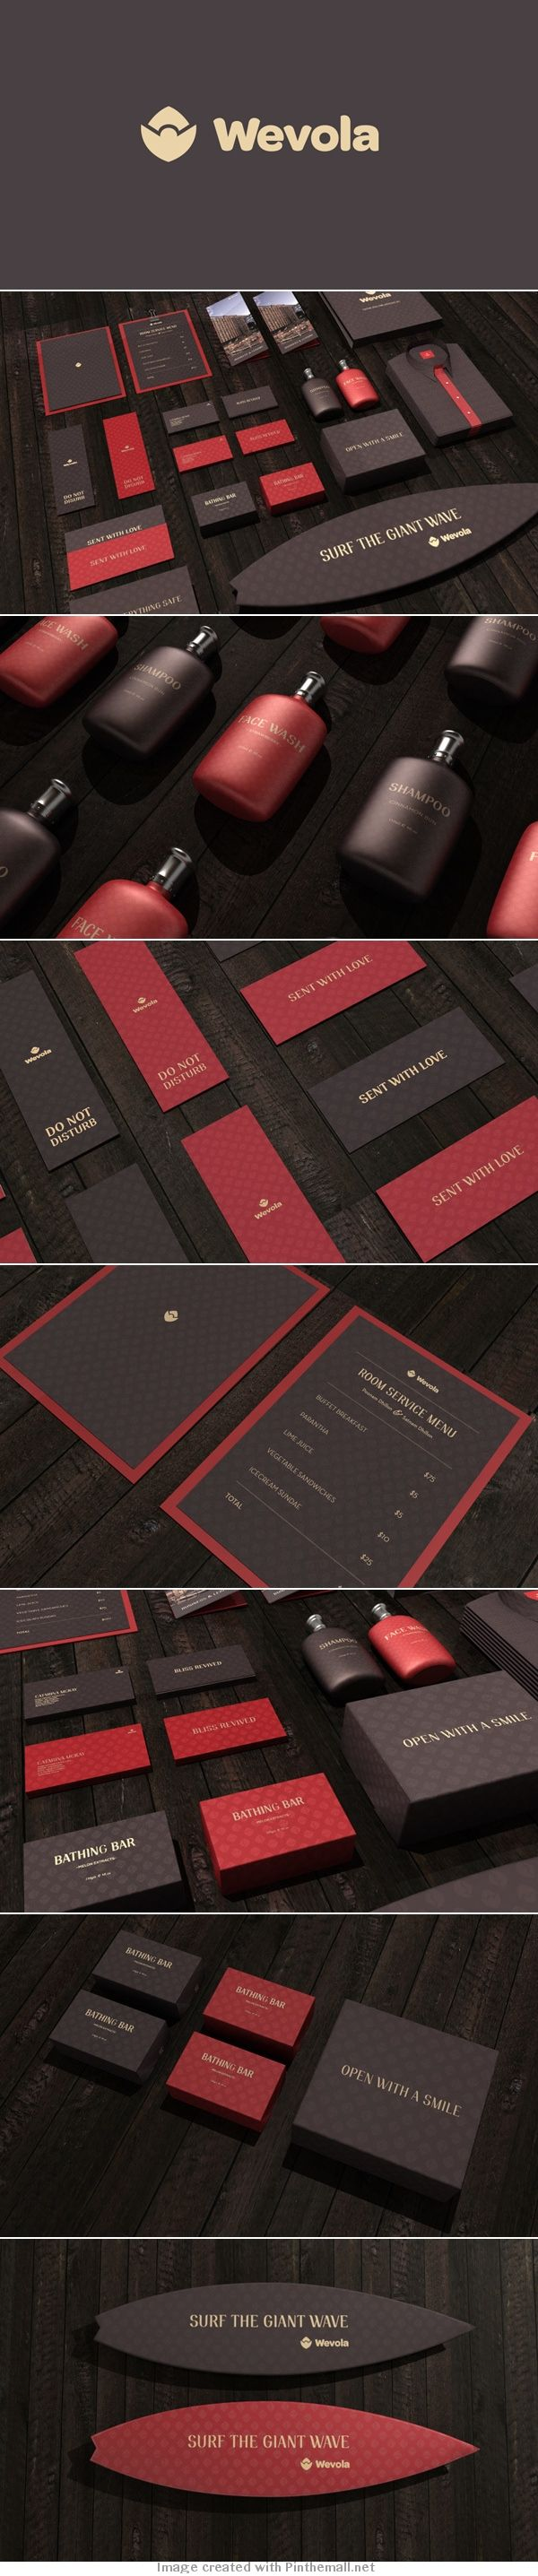 Wevola Hotel by Jekin Gala simple and lovely #identity #packaging #branding PD